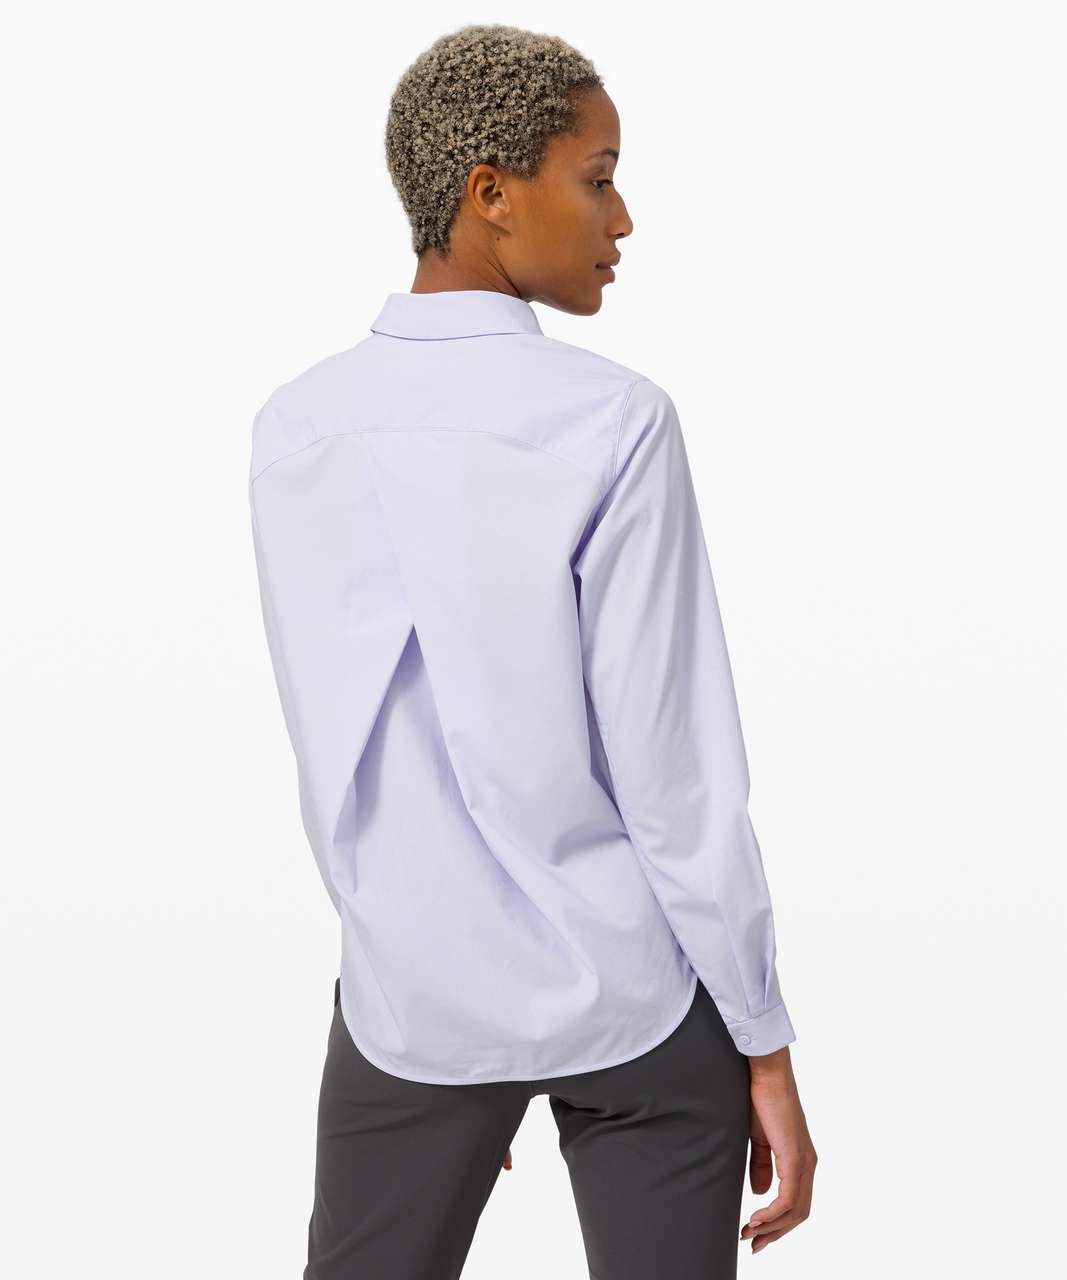 Lululemon Full Day Ahead Shirt - Serene Blue